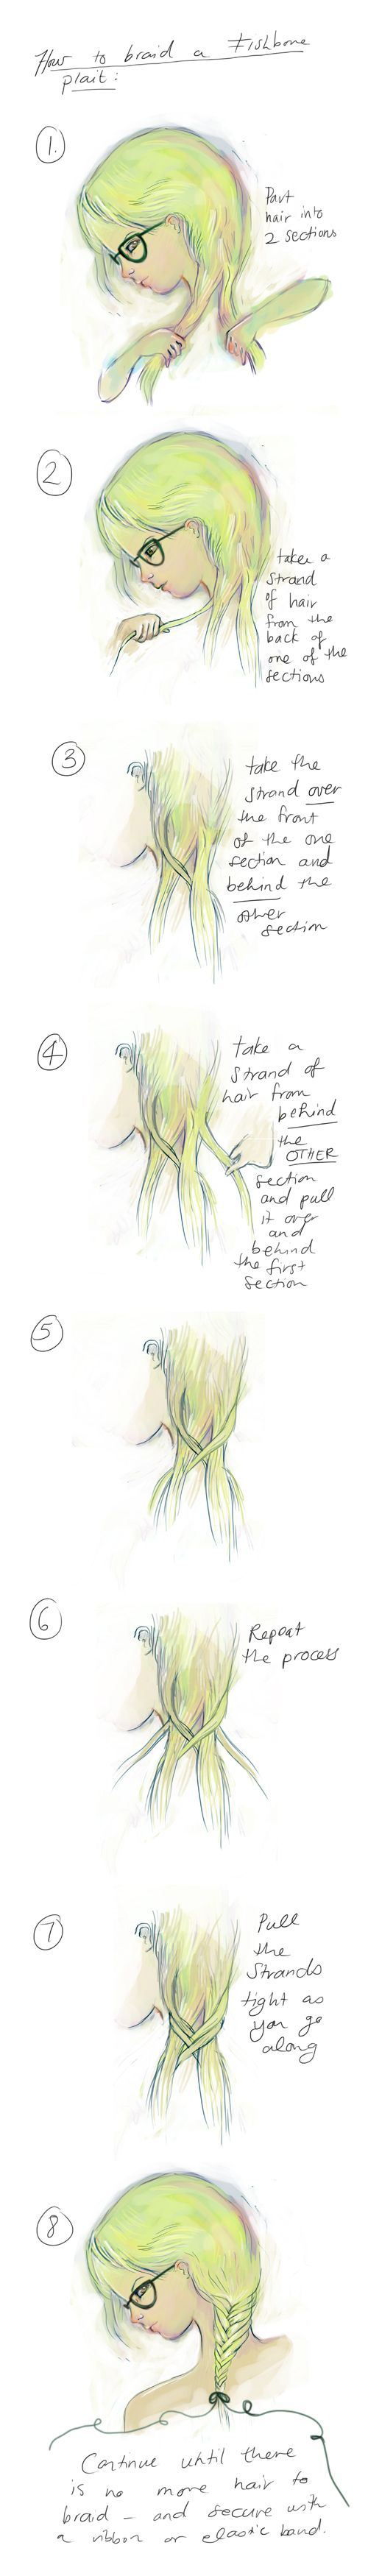 for the life of me coud not figure out how to fishtail braid til I found this illustration. fishtail braid how-to diagram